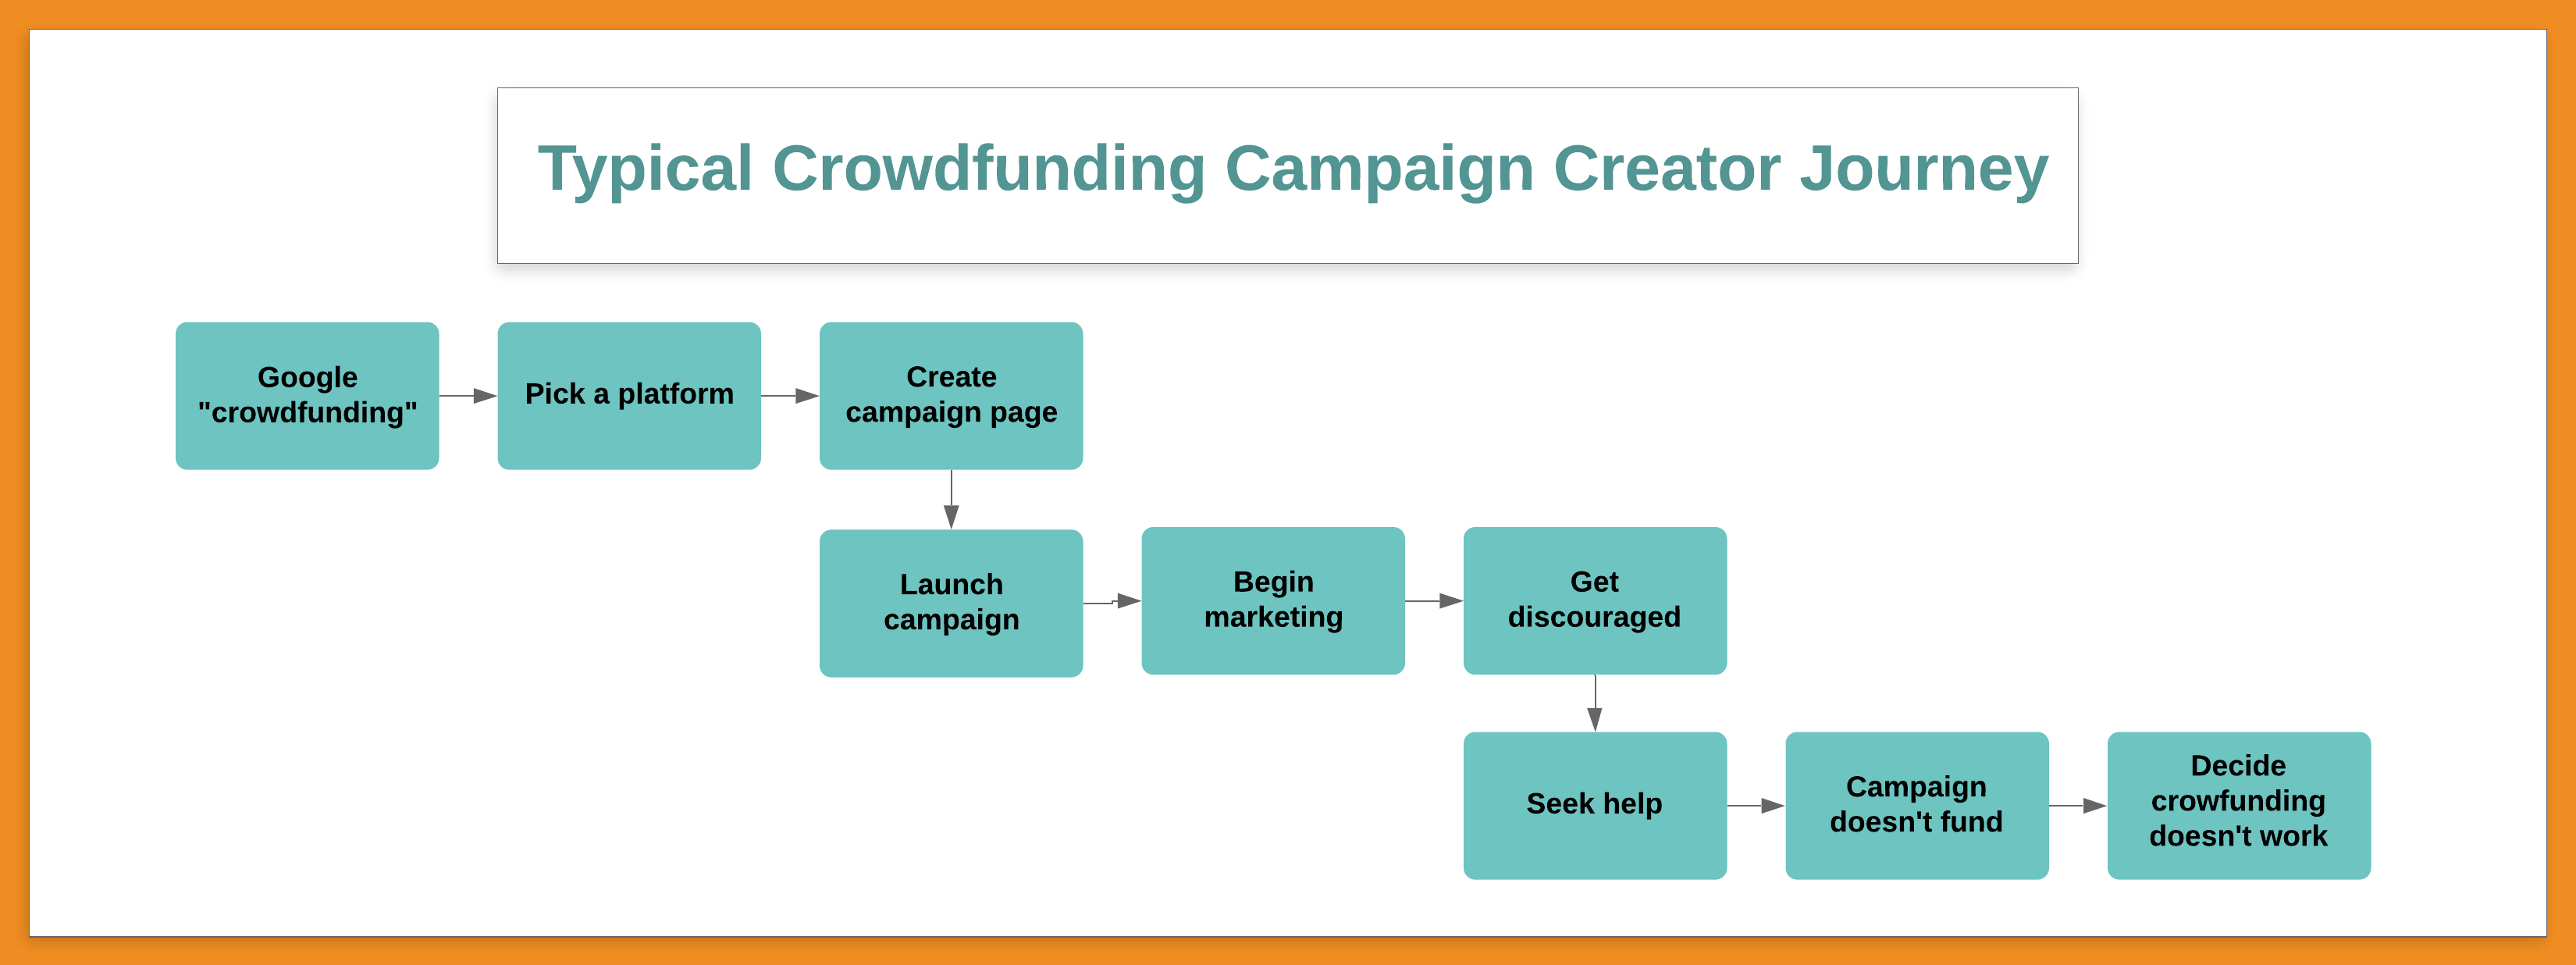 typical crowdfunding campaign creator journey, crowdfunding failure, crowdfunding success, how to crowdfund, how not to crowdfund, launching a crowdfunding campaign